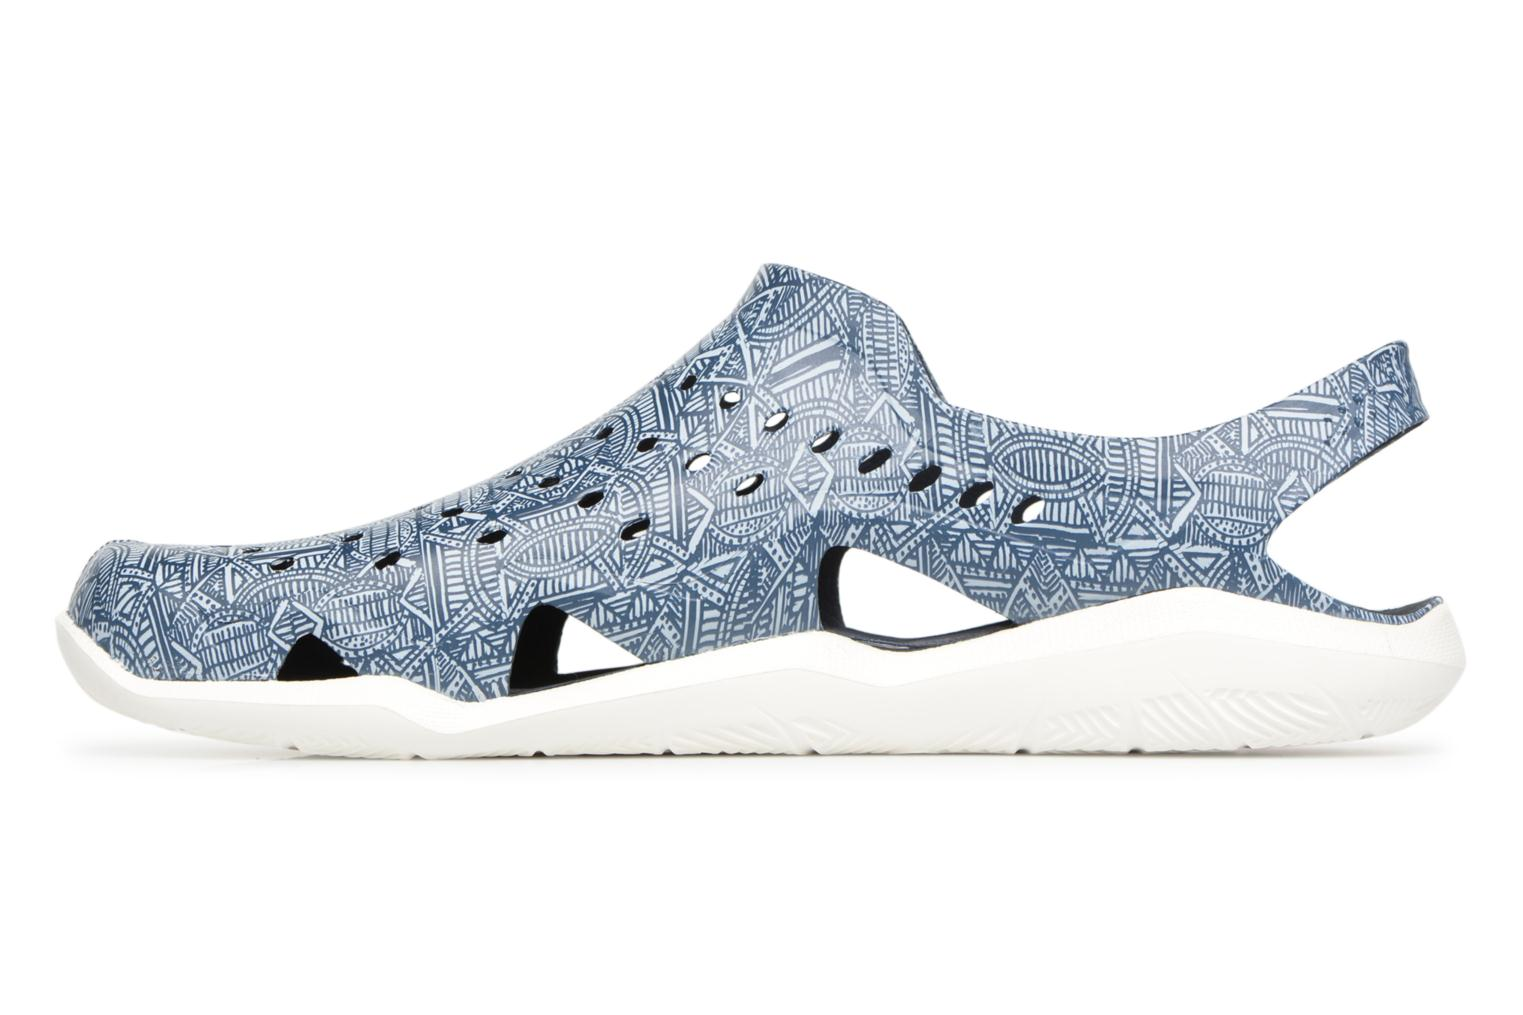 Grph white Swift Navy Crocs Wave M qwTO7E4H